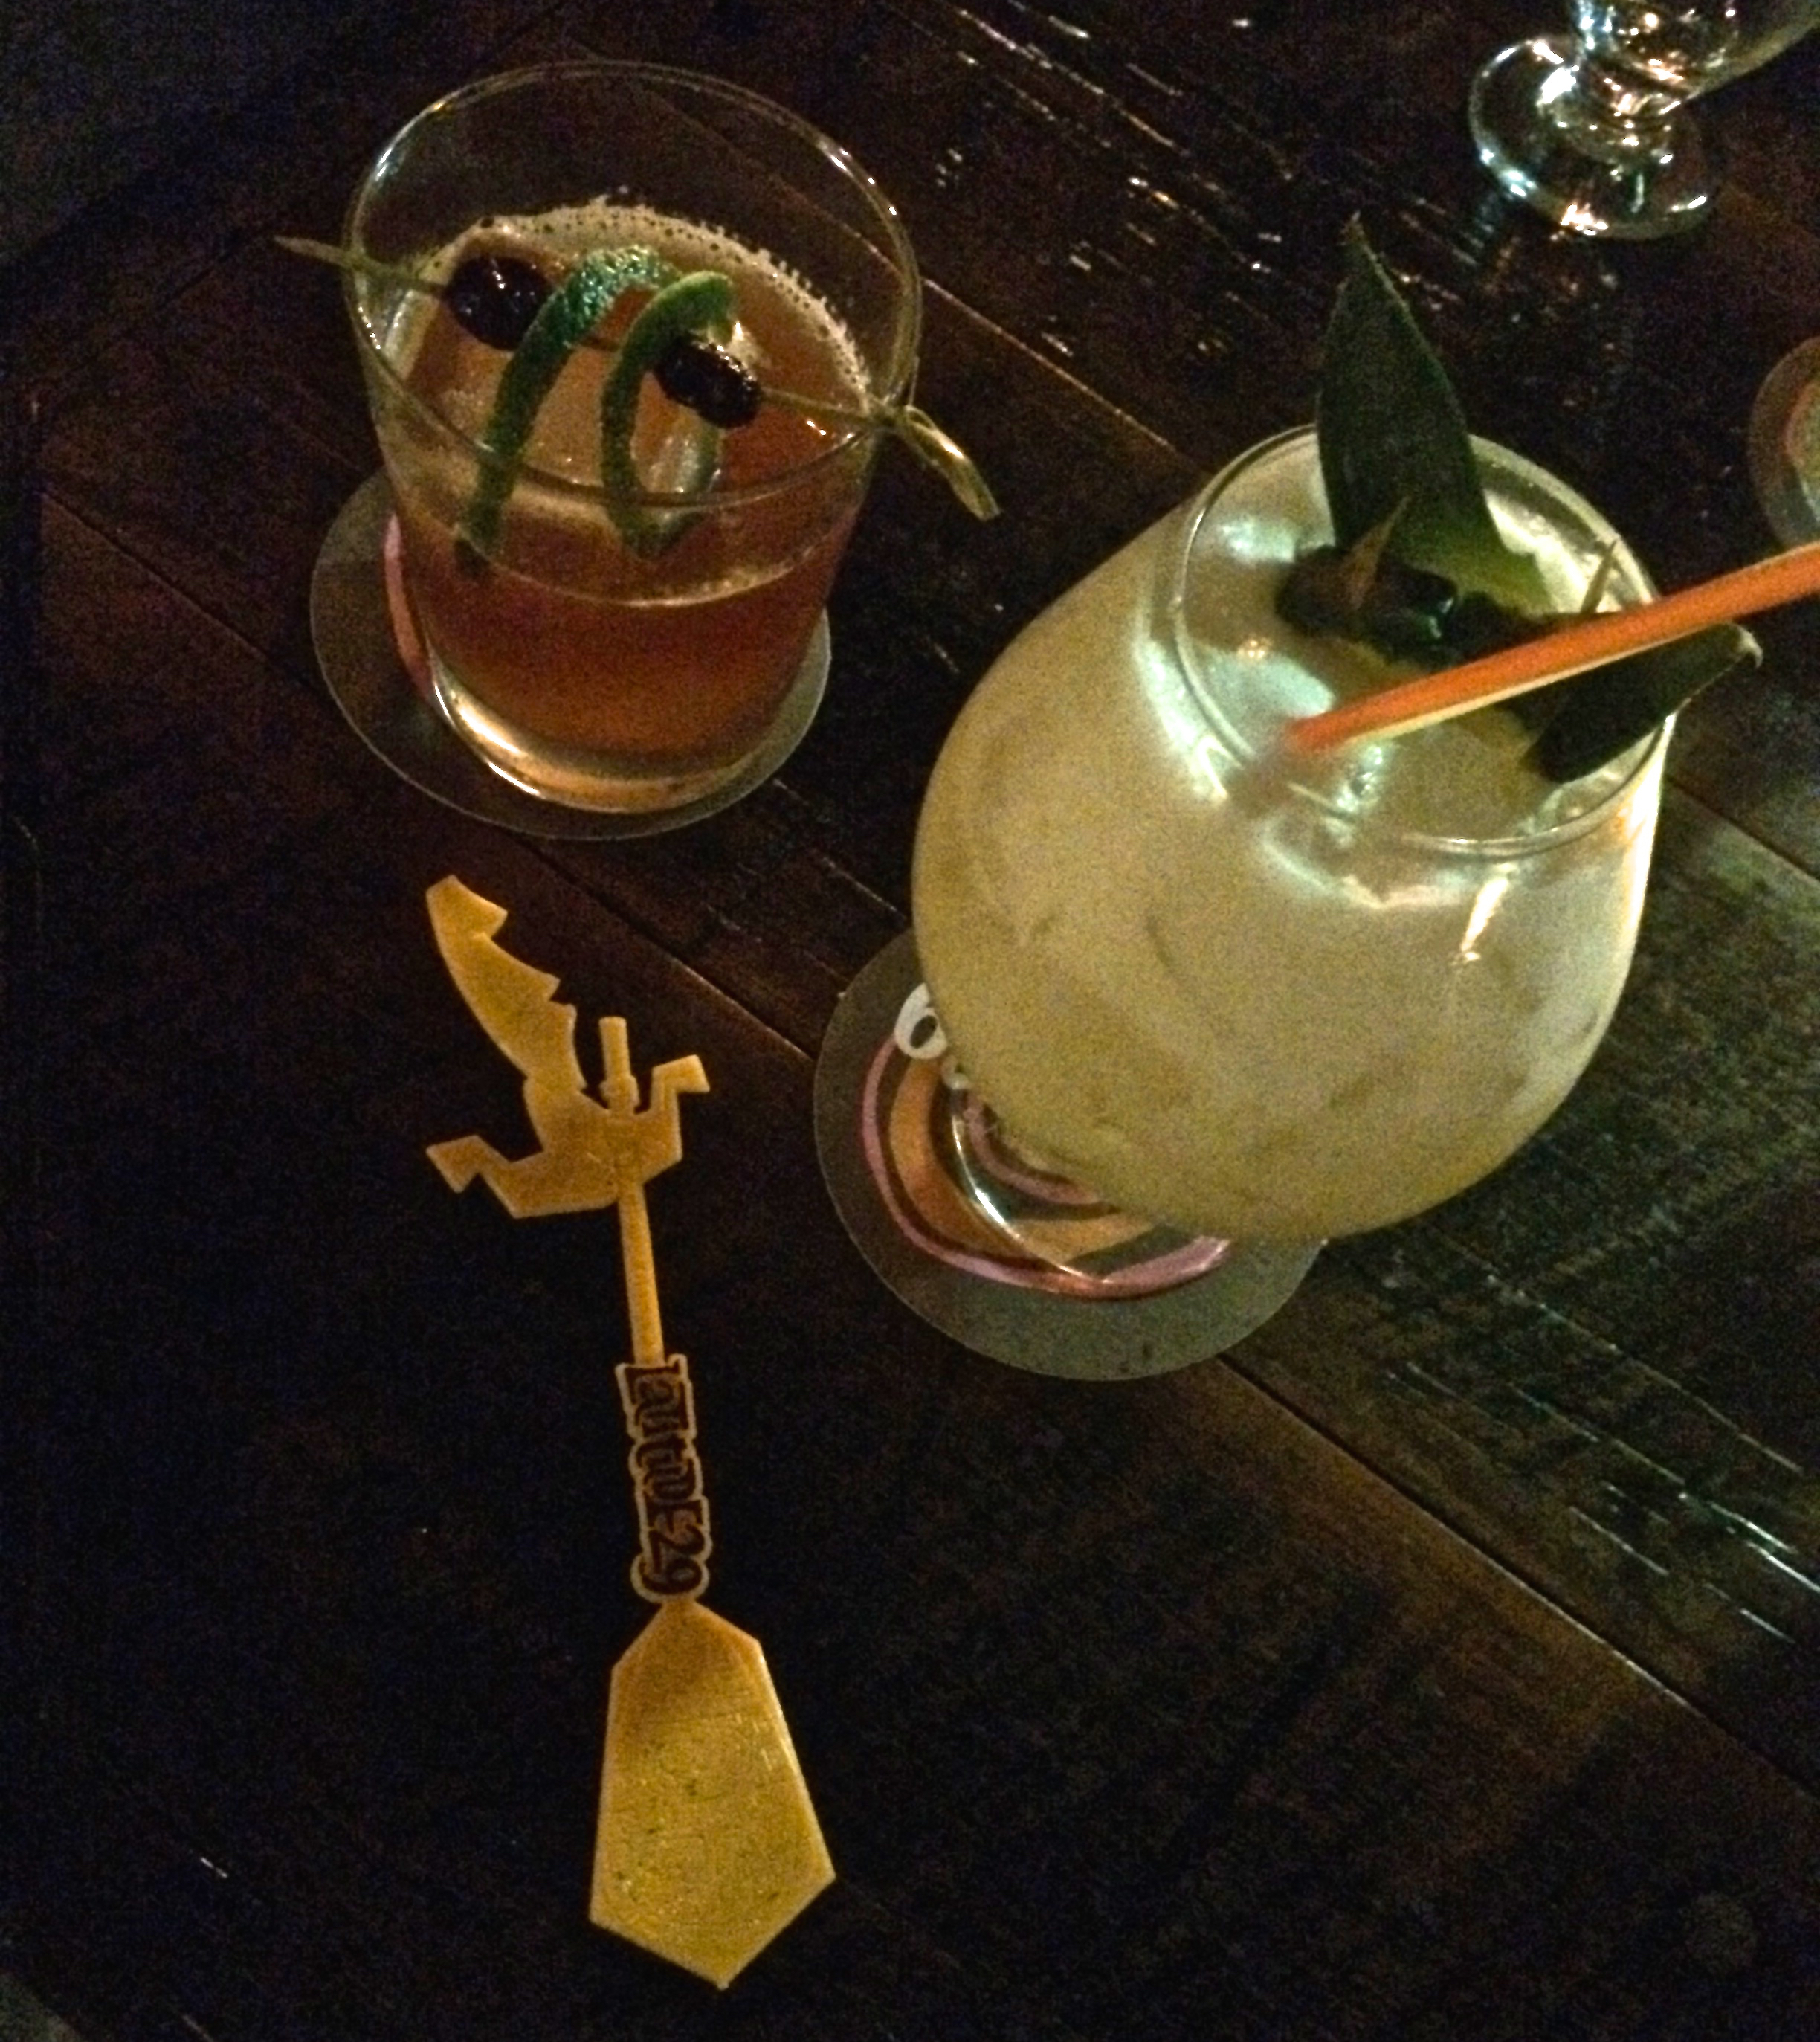 paniolo, kea coloda, and swizzle stick (stolen promptly from my sister's latitude 29 drink)